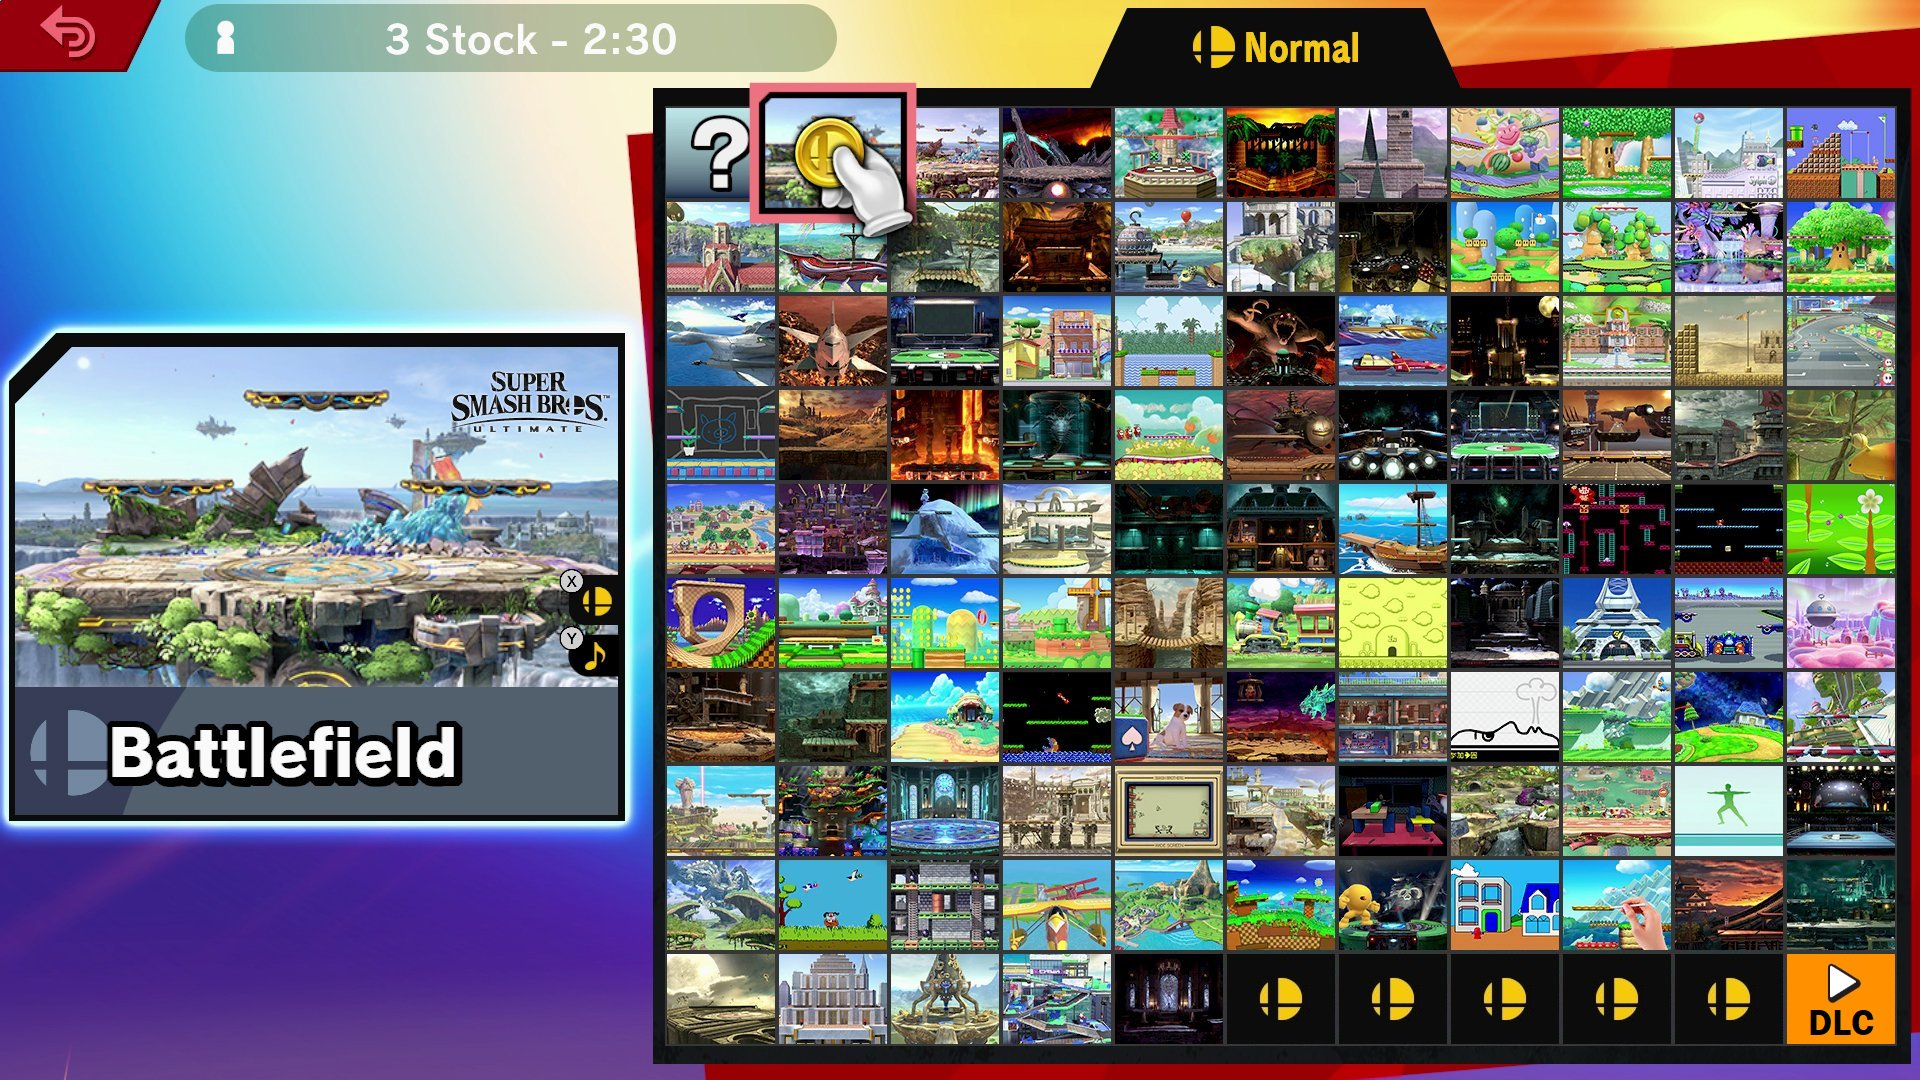 CoroCoro Confirms Smash Ultimate Will Have At Least 108 Stages